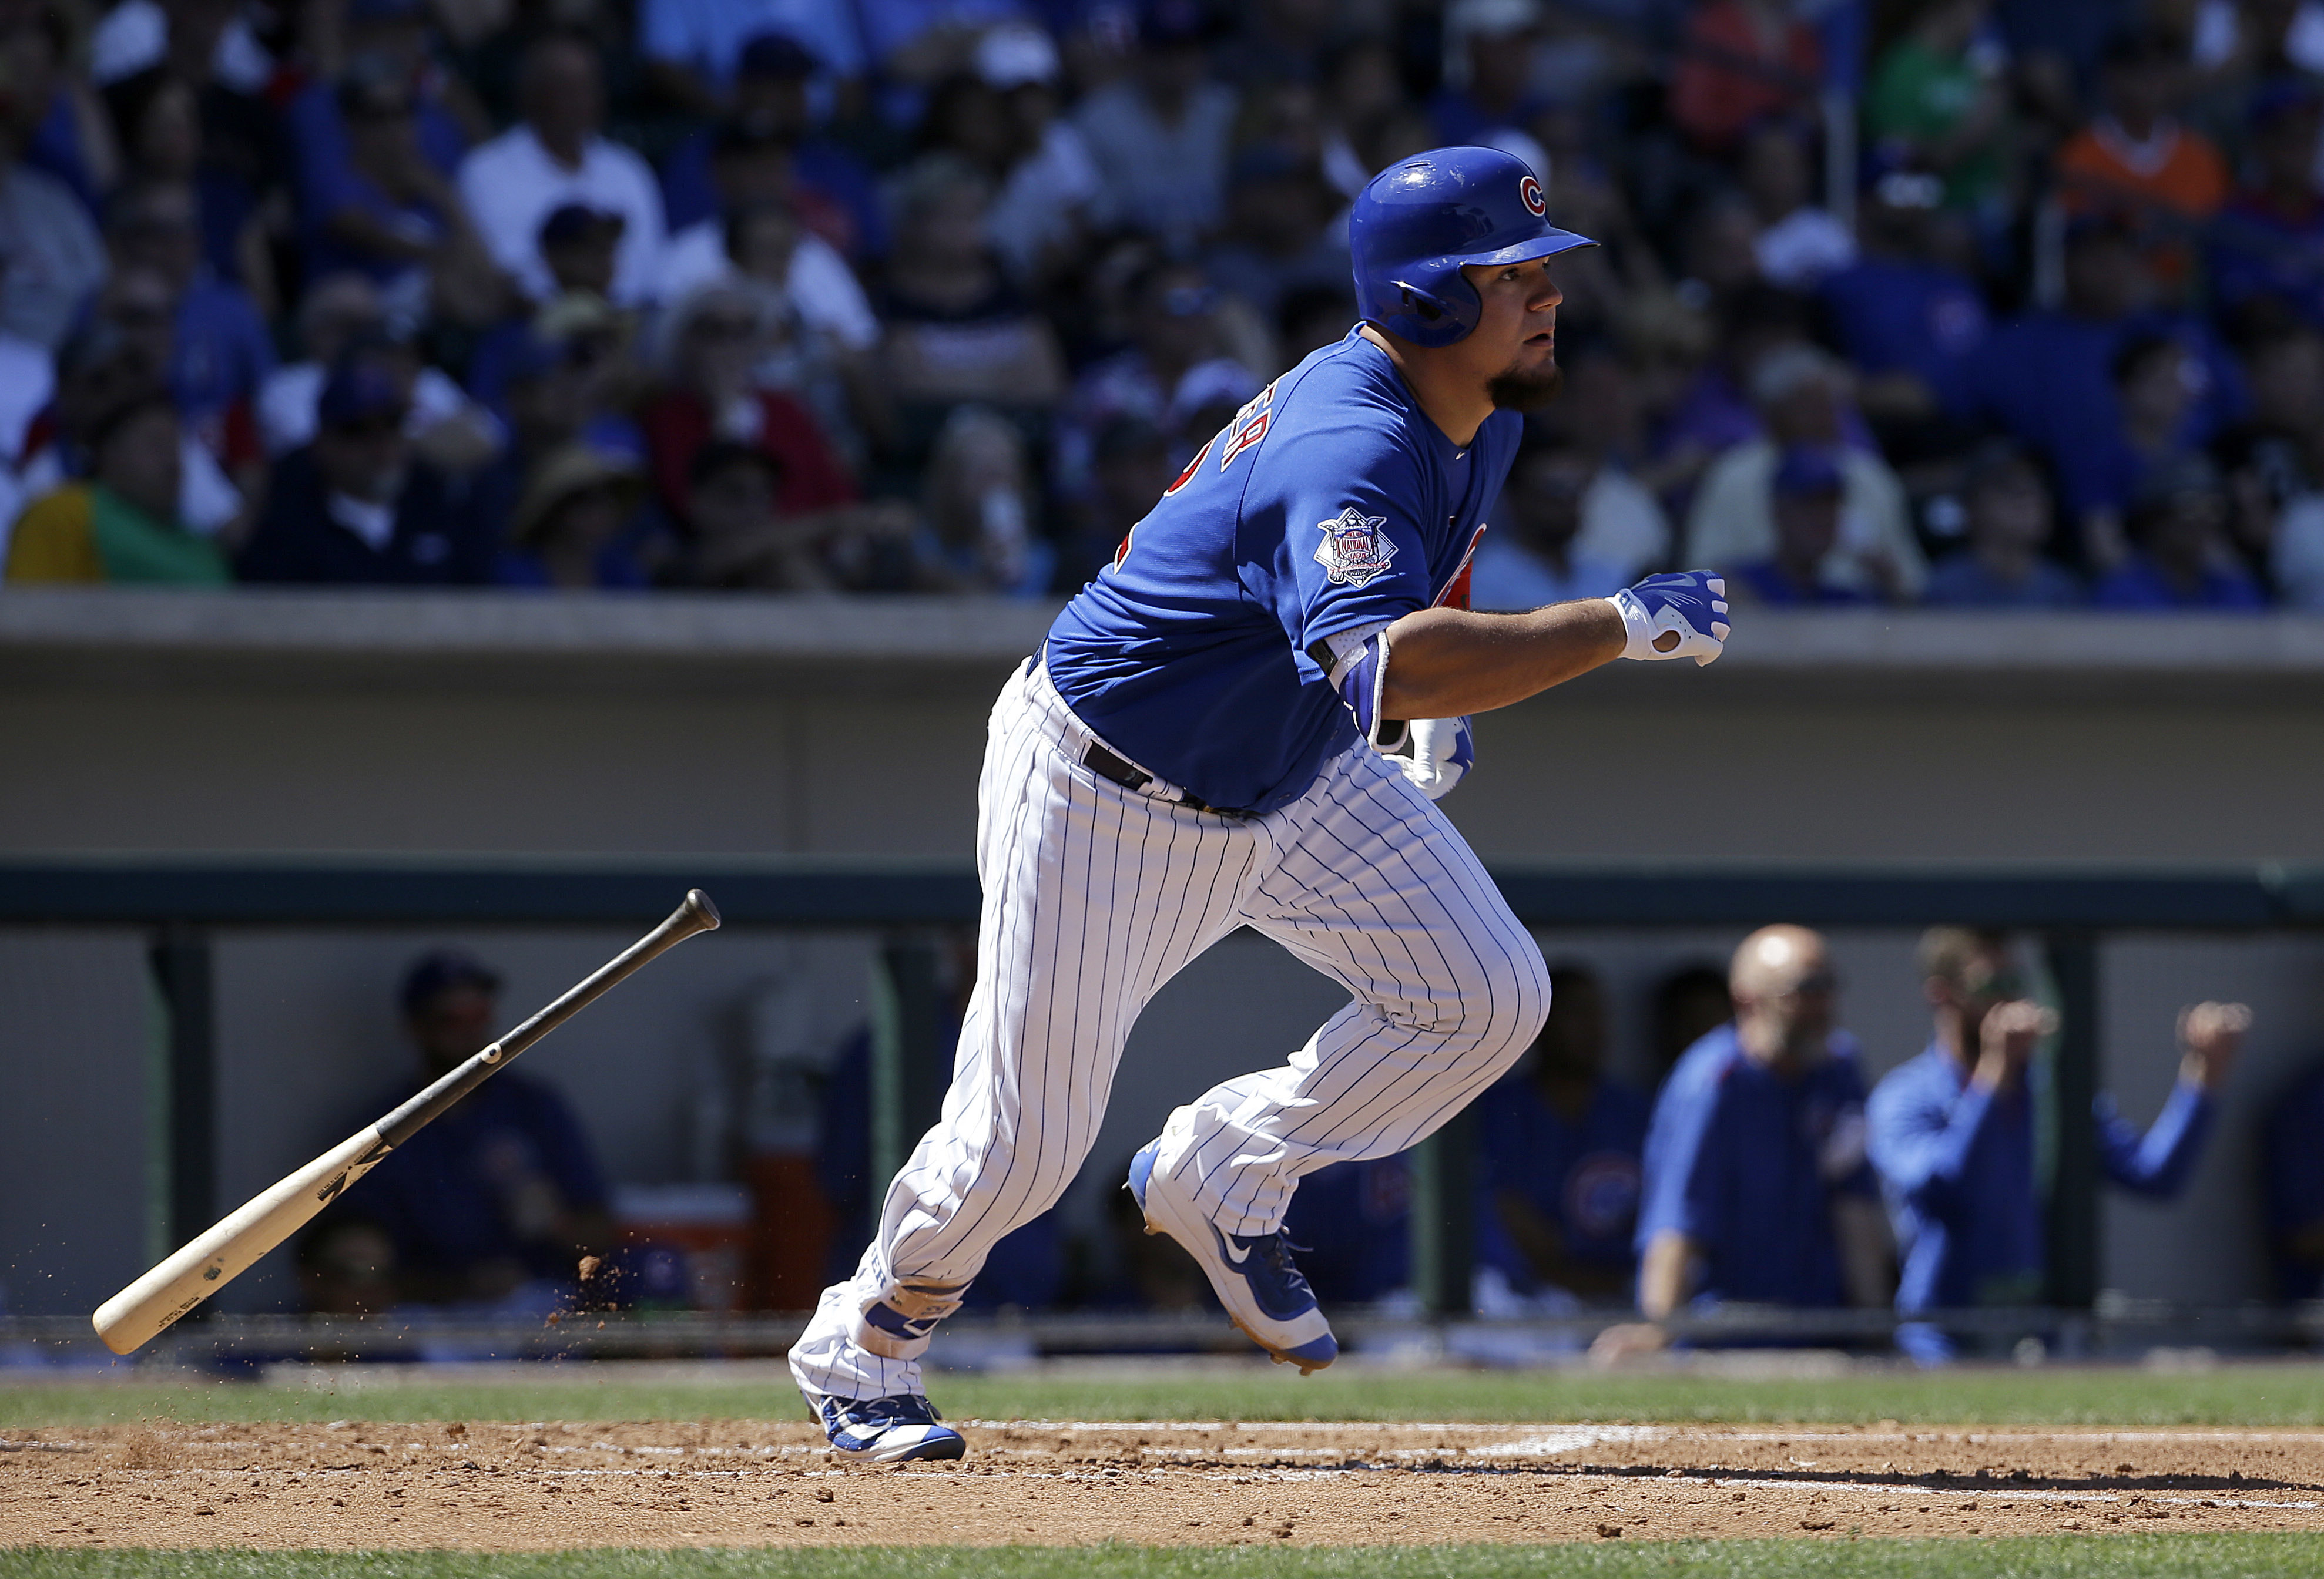 FILE - In this March 26, 2016, file photo, Chicago Cubs' Kyle Schwarber bats against the San Francisco Giants during a spring training baseball game in Mesa, Ariz. Schwarber has been added to the Chicago Cubs' World Series roster and could start Tuesday n